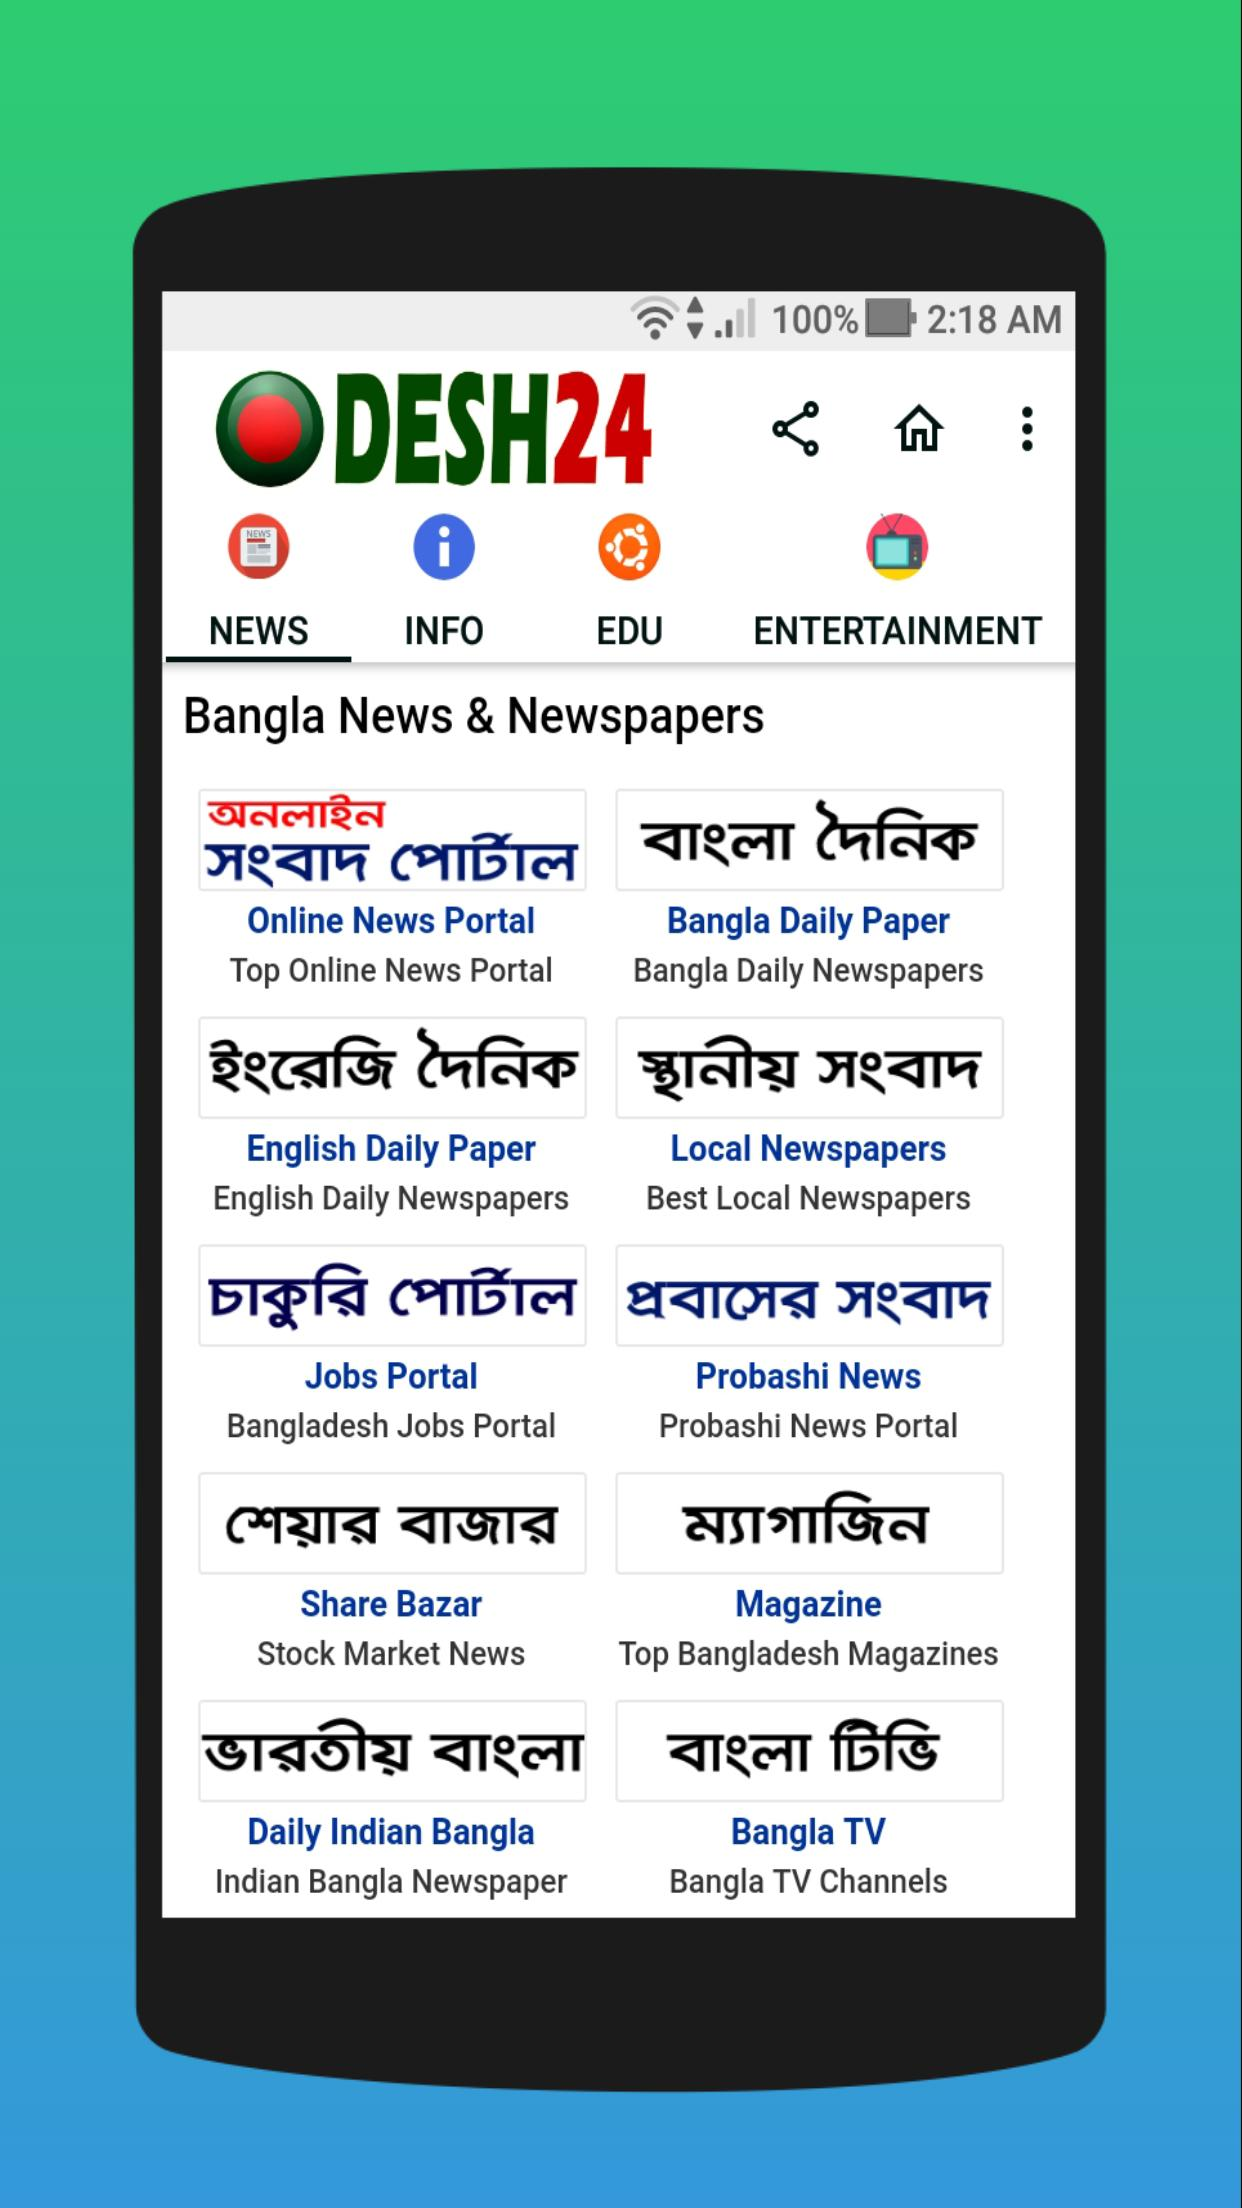 Desh24 - News, Info, Education & Entertainment for Android - APK